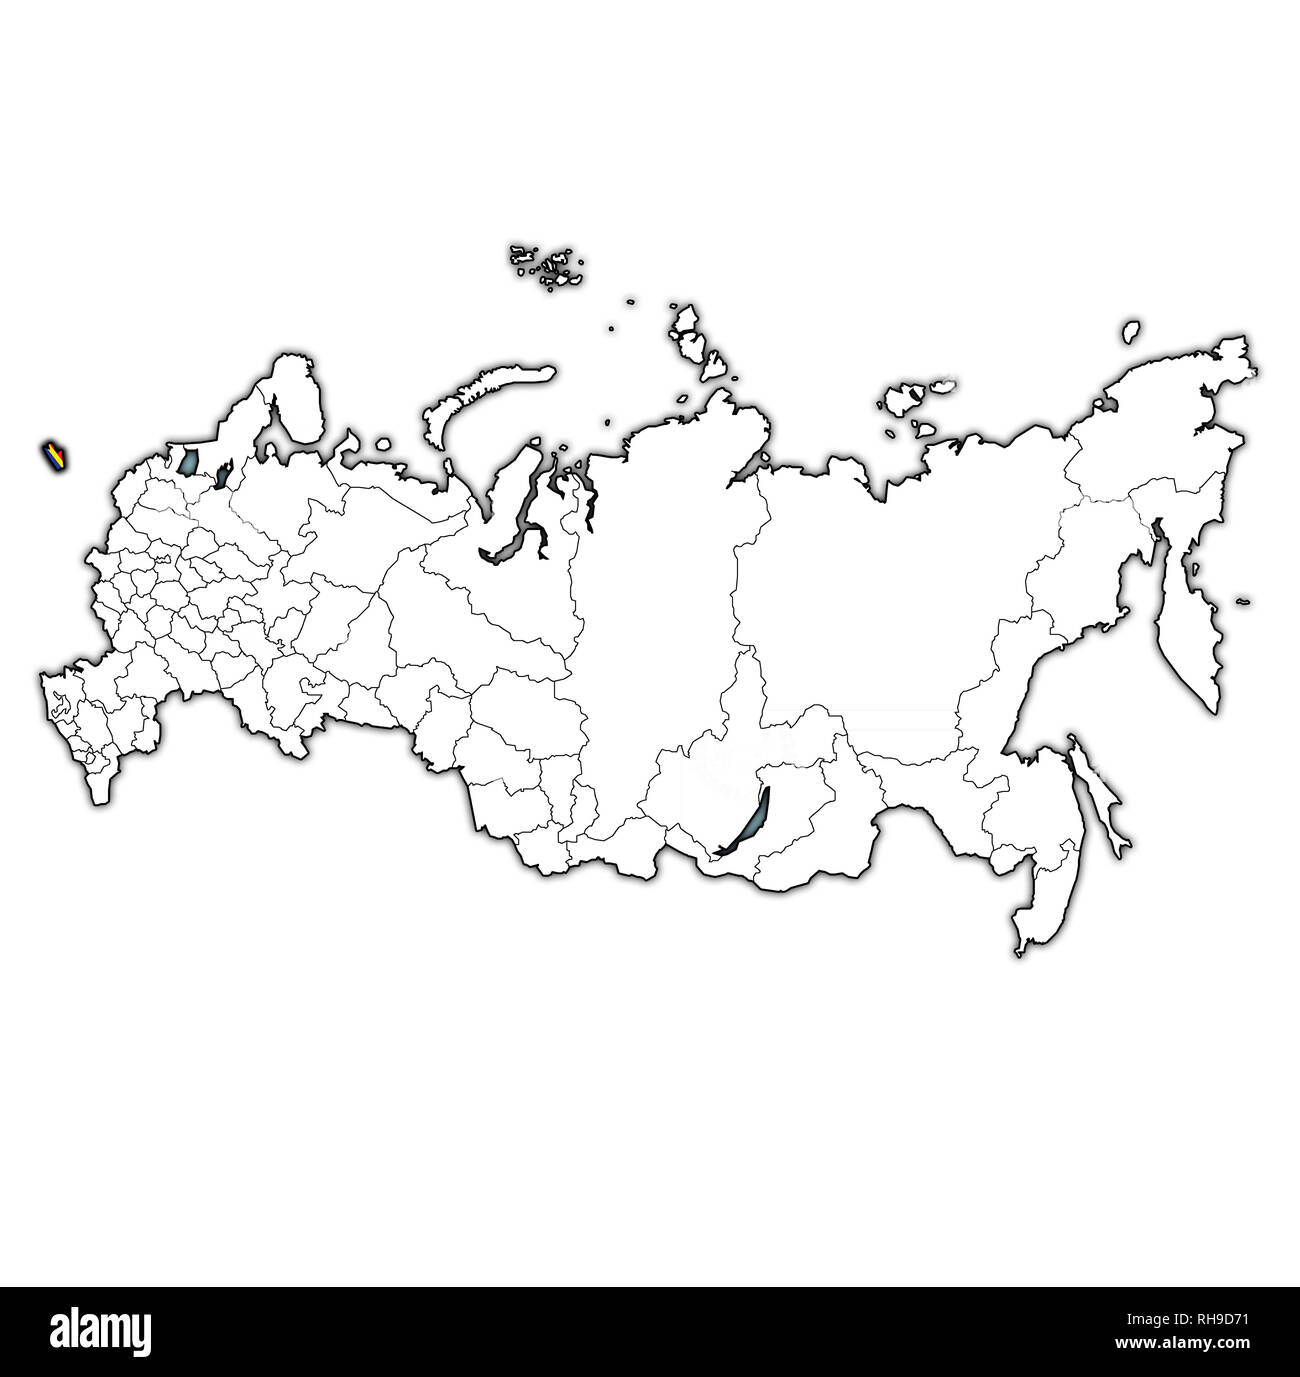 Kaliningrad Map on yamal peninsula map, nizhny novgorod map, kiev map, estonia map, crimean peninsula map, edinburgh map, konigsberg map, krasnodar map, east prussia, caspian sea map, corsica map, kuril islands map, russian plain map, rotterdam map, dagestan map, nizhny novgorod, siberia map, crimea map, aral sea map, kamchatka peninsula map, kazakhstan map, saint petersburg, balkan peninsula map,